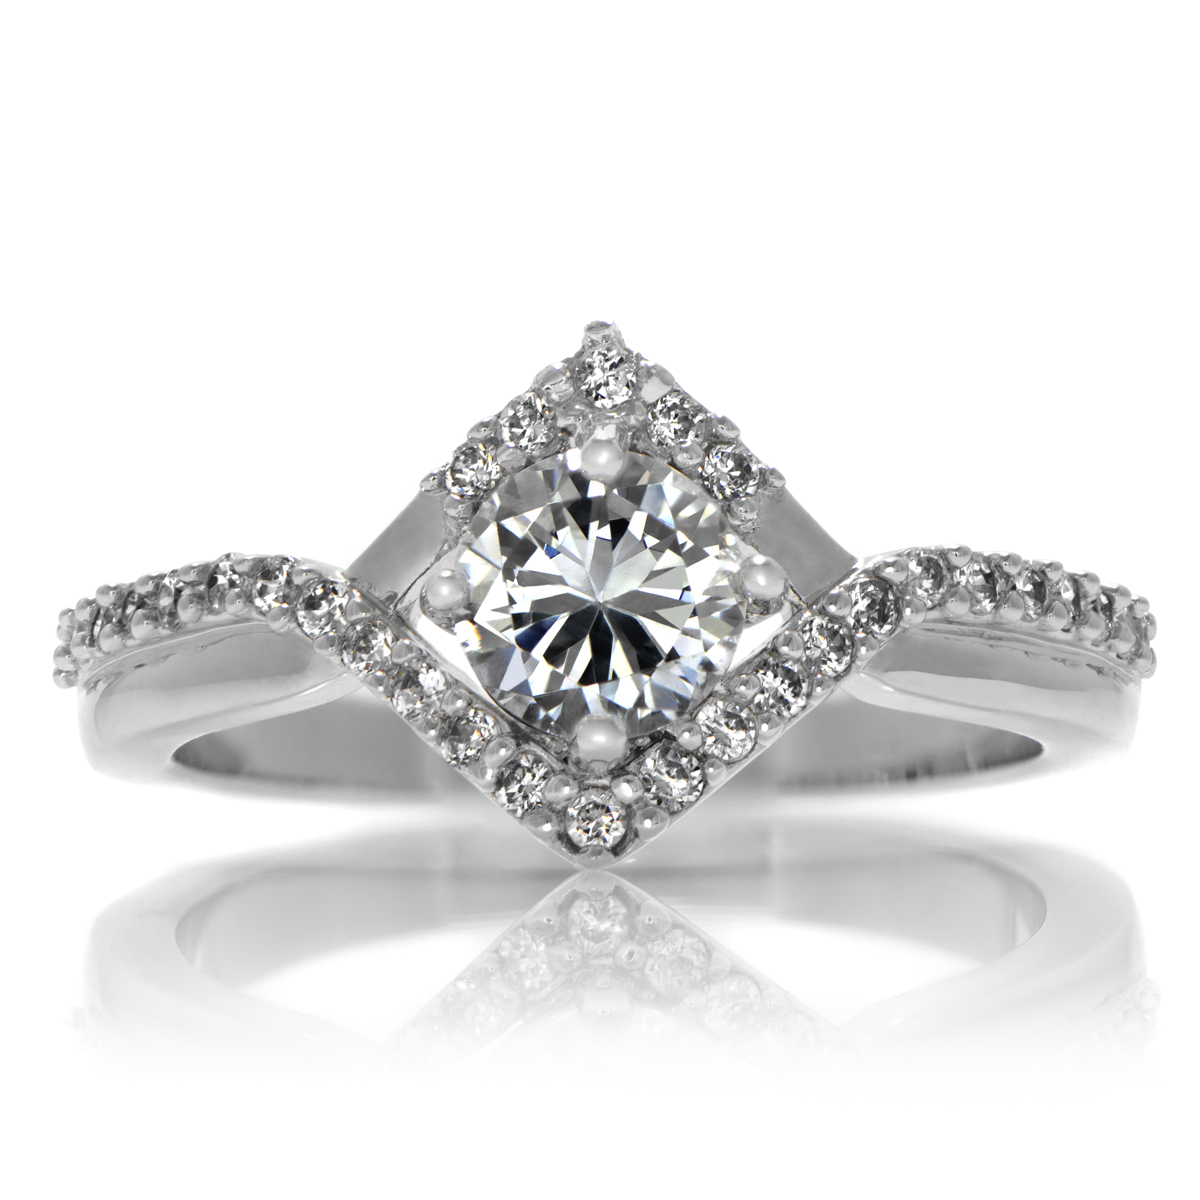 Natalie's Round Cut Vintage Style Engagement Ring  05 Carats